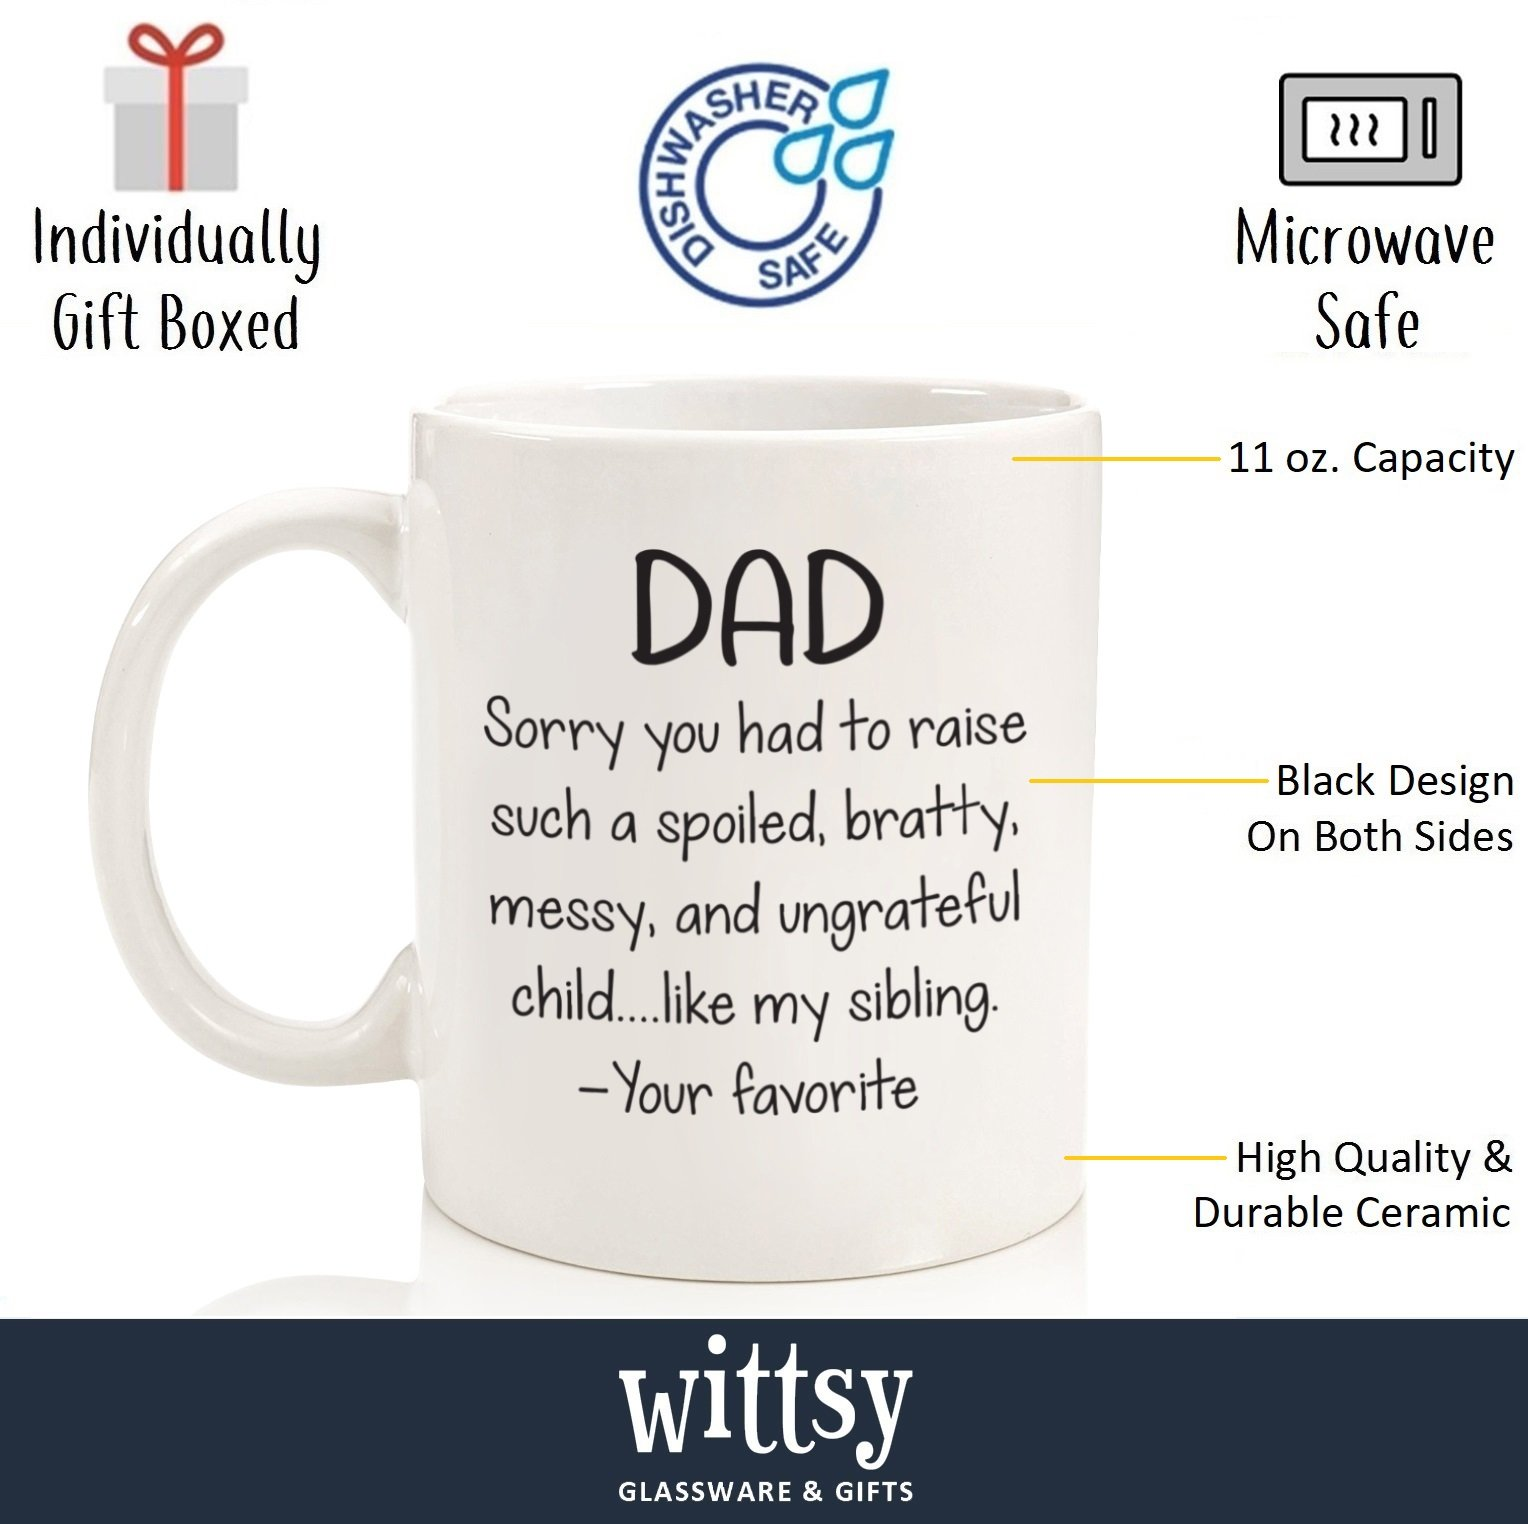 Spoiled Sibling Funny Coffee Mug - Best Dad Gifts - Unique Gag Fathers Day Gift For Him From Daughter, Son, Favorite Child - Cool Birthday Present Idea For Men, Guys, Father - Fun Novelty Cup - 11 oz by Wittsy Glassware and Gifts (Image #2)